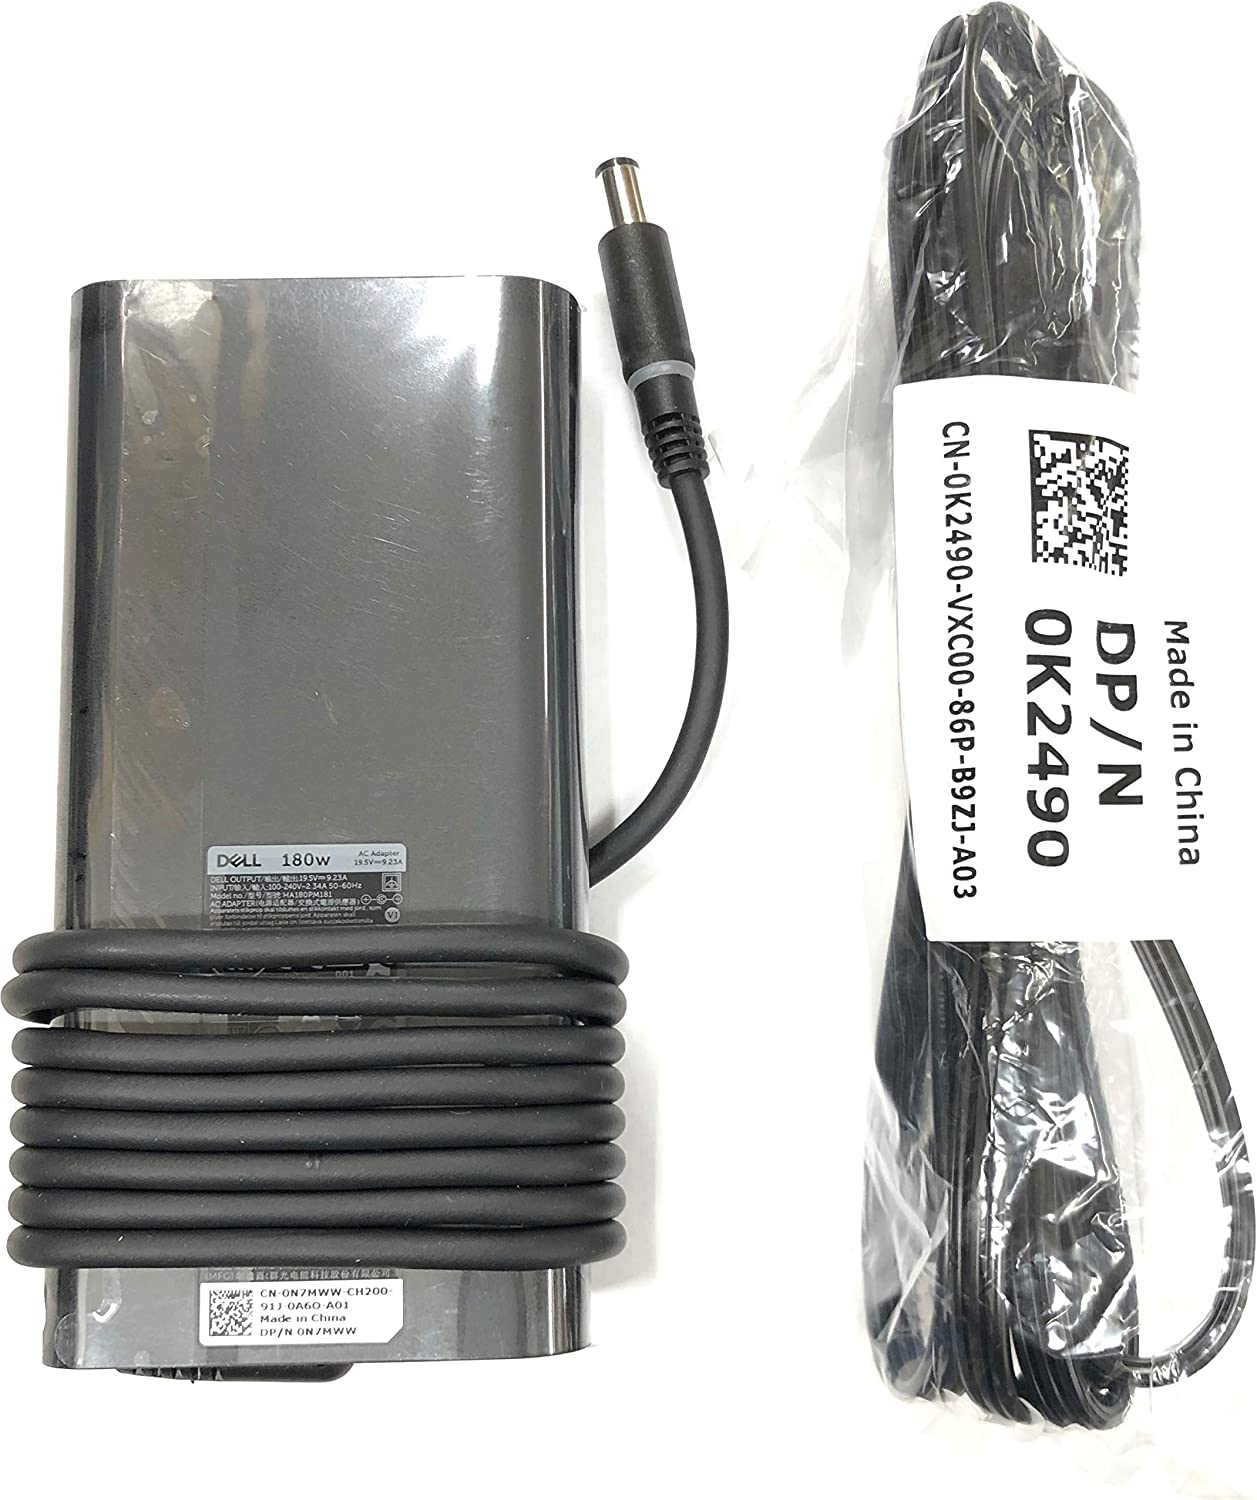 Dell 180W AC Adapter for Precision 7520, Alienware 15 R4, Alienware 17 R5, G7 15 (7588), G3 15 (3579) G3 17 (3779), G5 15 (5587), Inspiron 15 7000 Series (7577), Alienware M15, HA180PM181